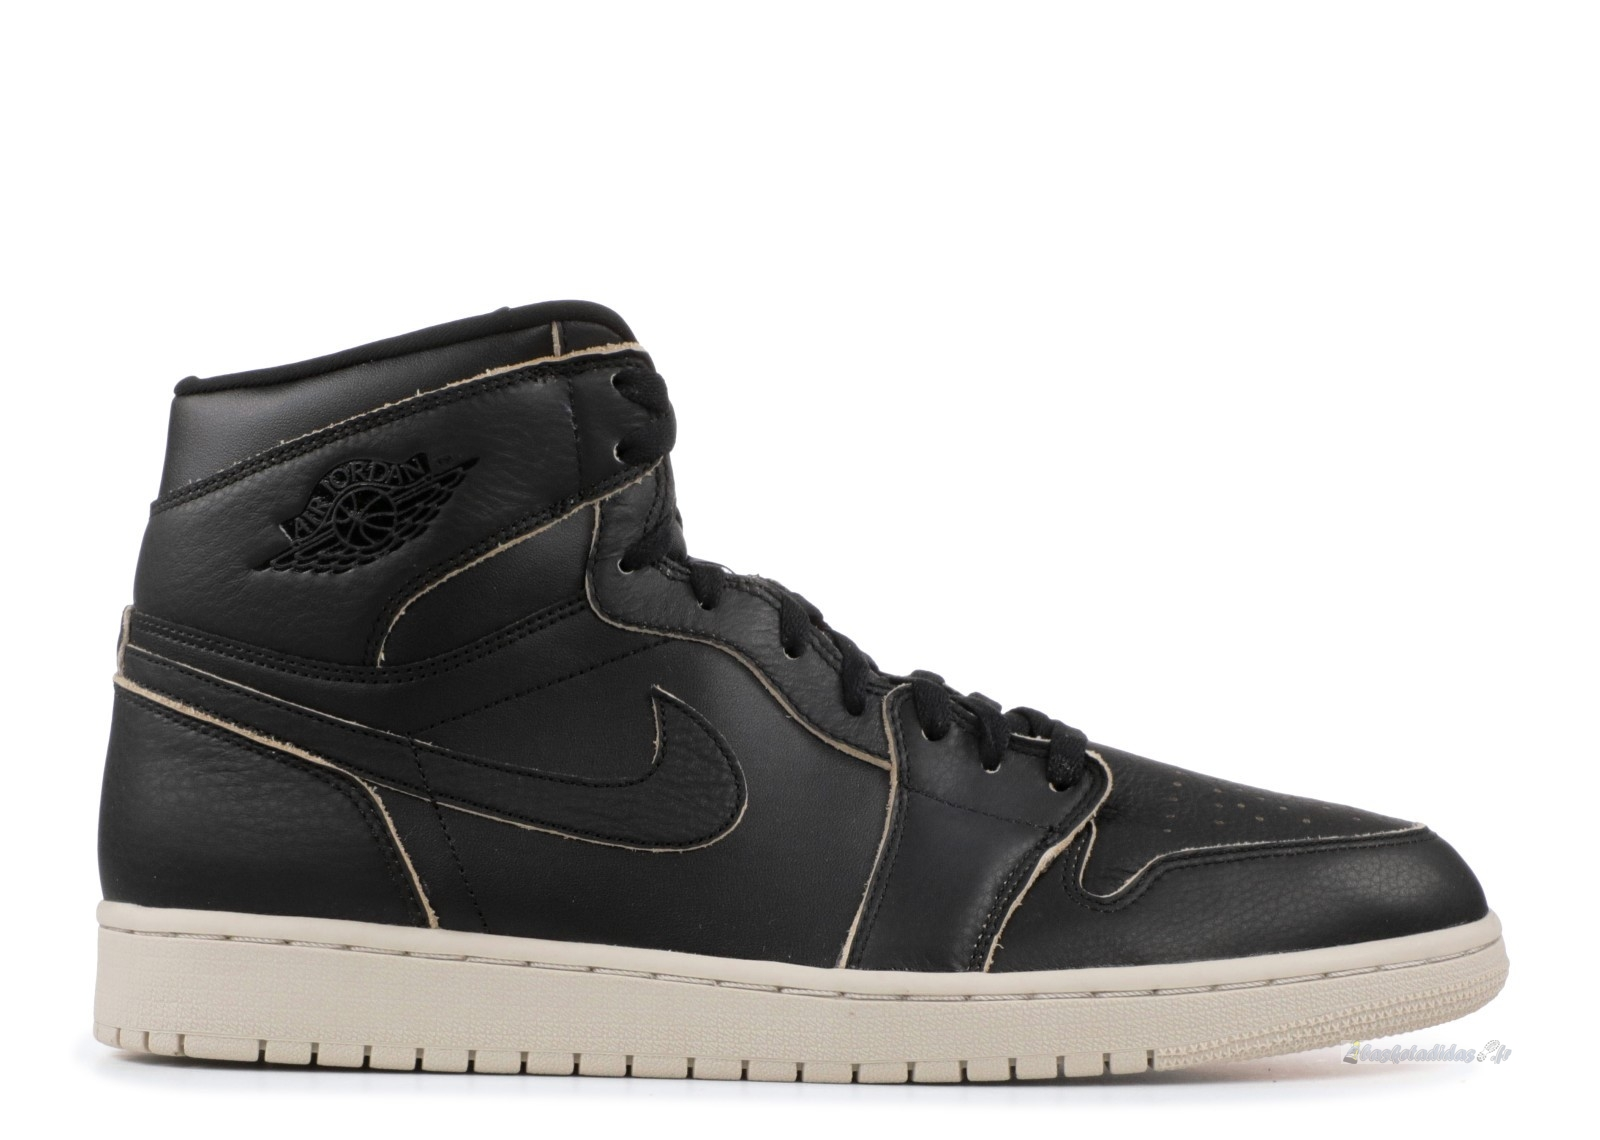 Chaussure de Basket Air Jordan 1 Retro High Prem Noir (aa3993-021)